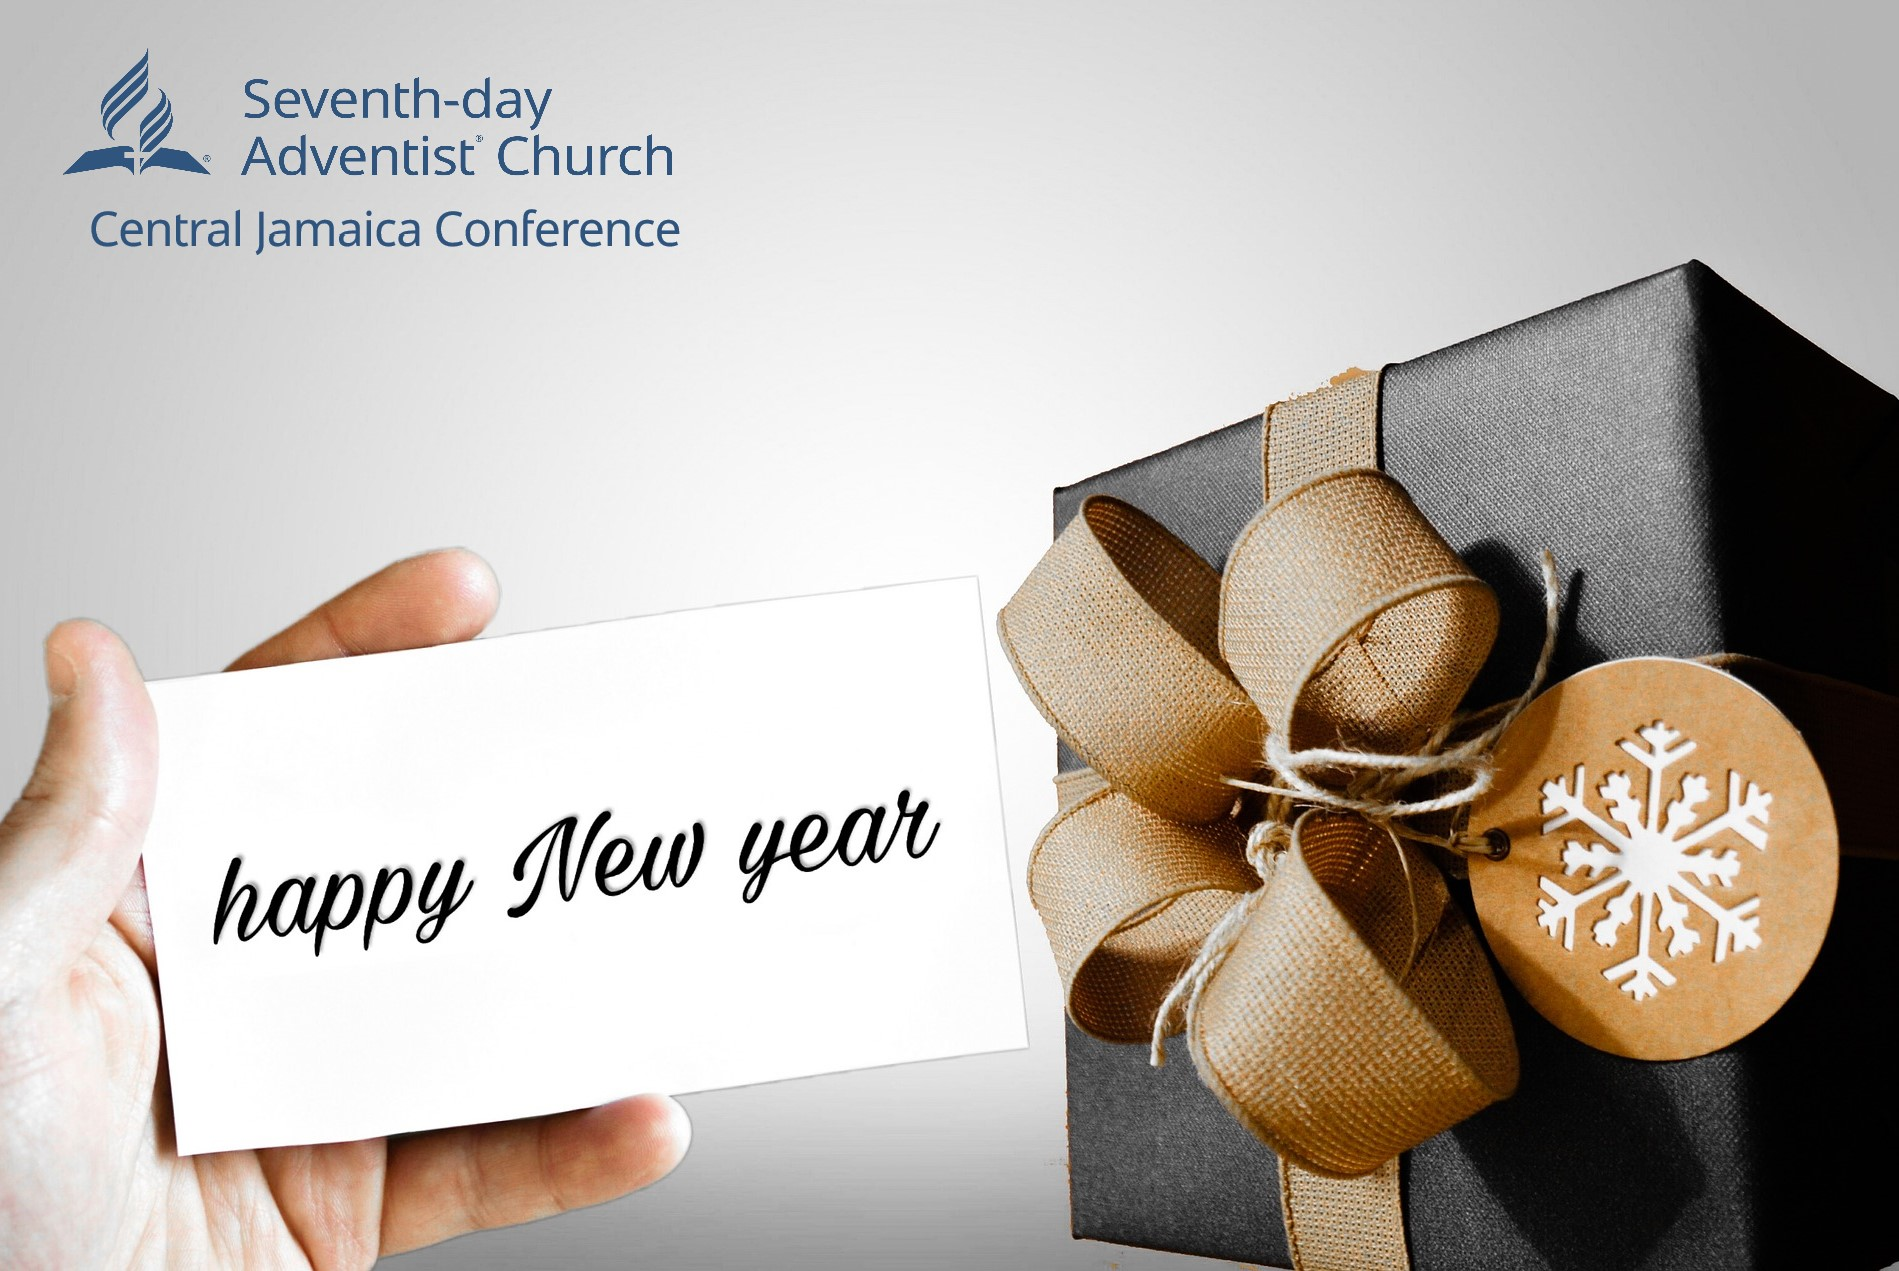 Communication :: Central Jamaica Conference of Seventh-day Adventists